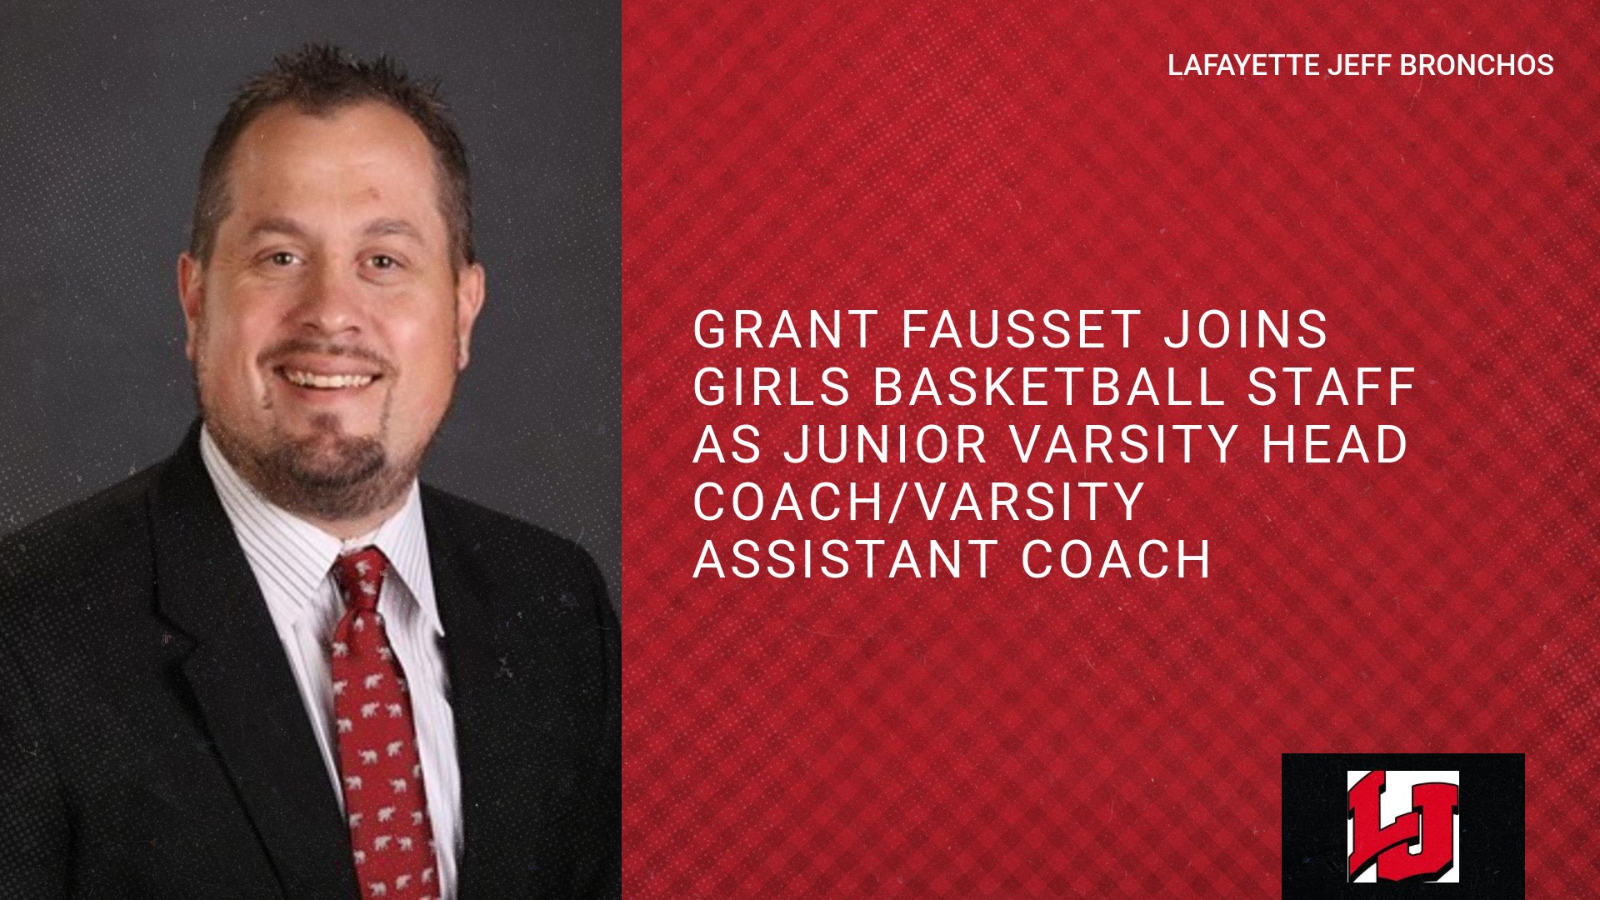 Grant Fausset Brings Collegiate Experience to Lafayette Jeff